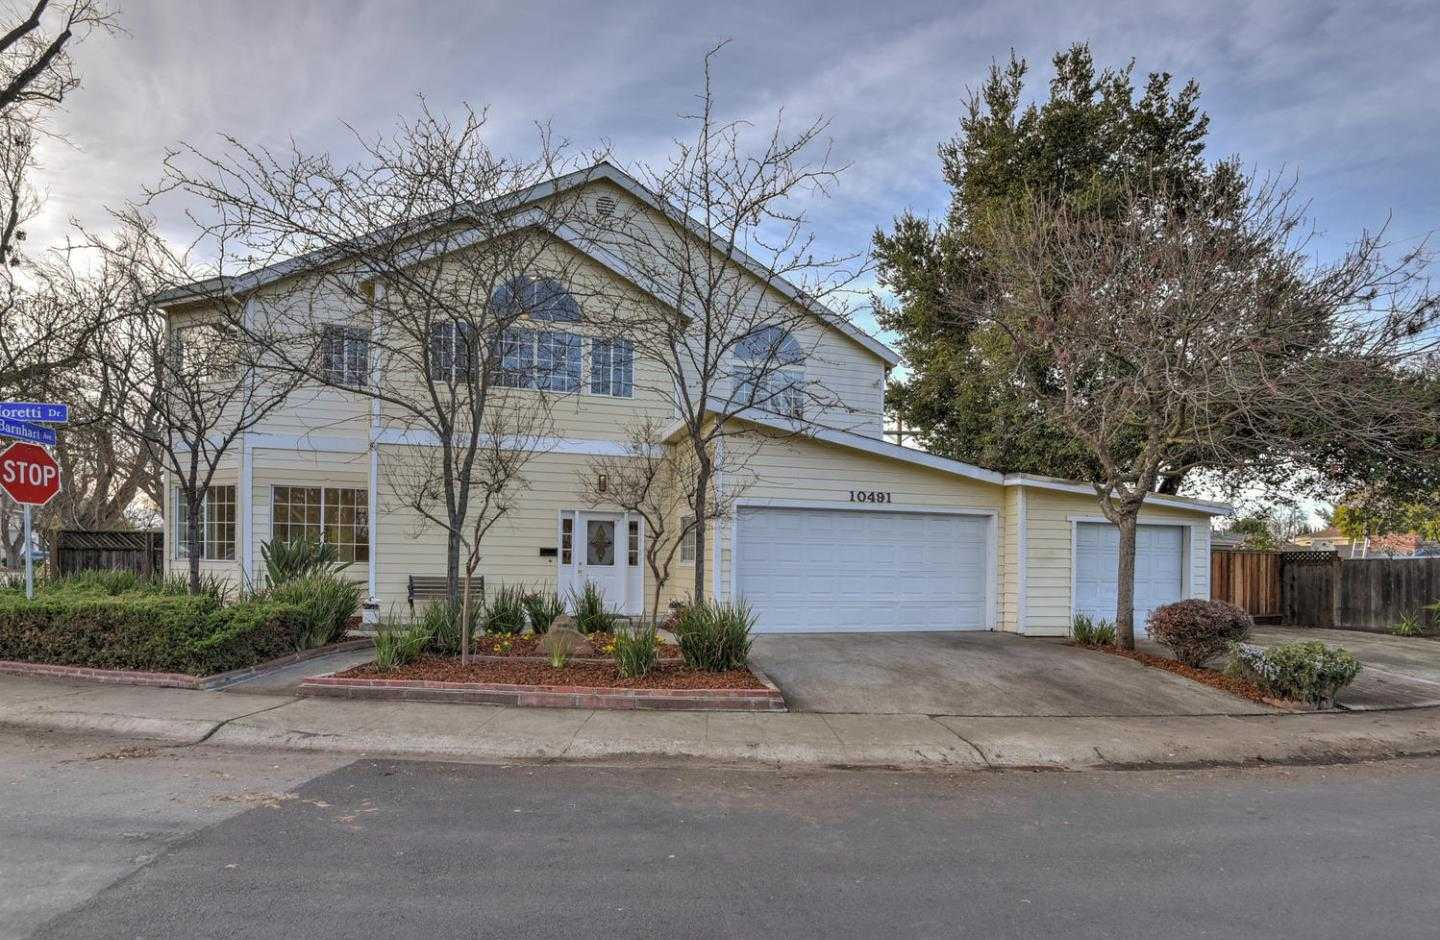 $1,998,888 - 7Br/6Ba -  for Sale in Cupertino